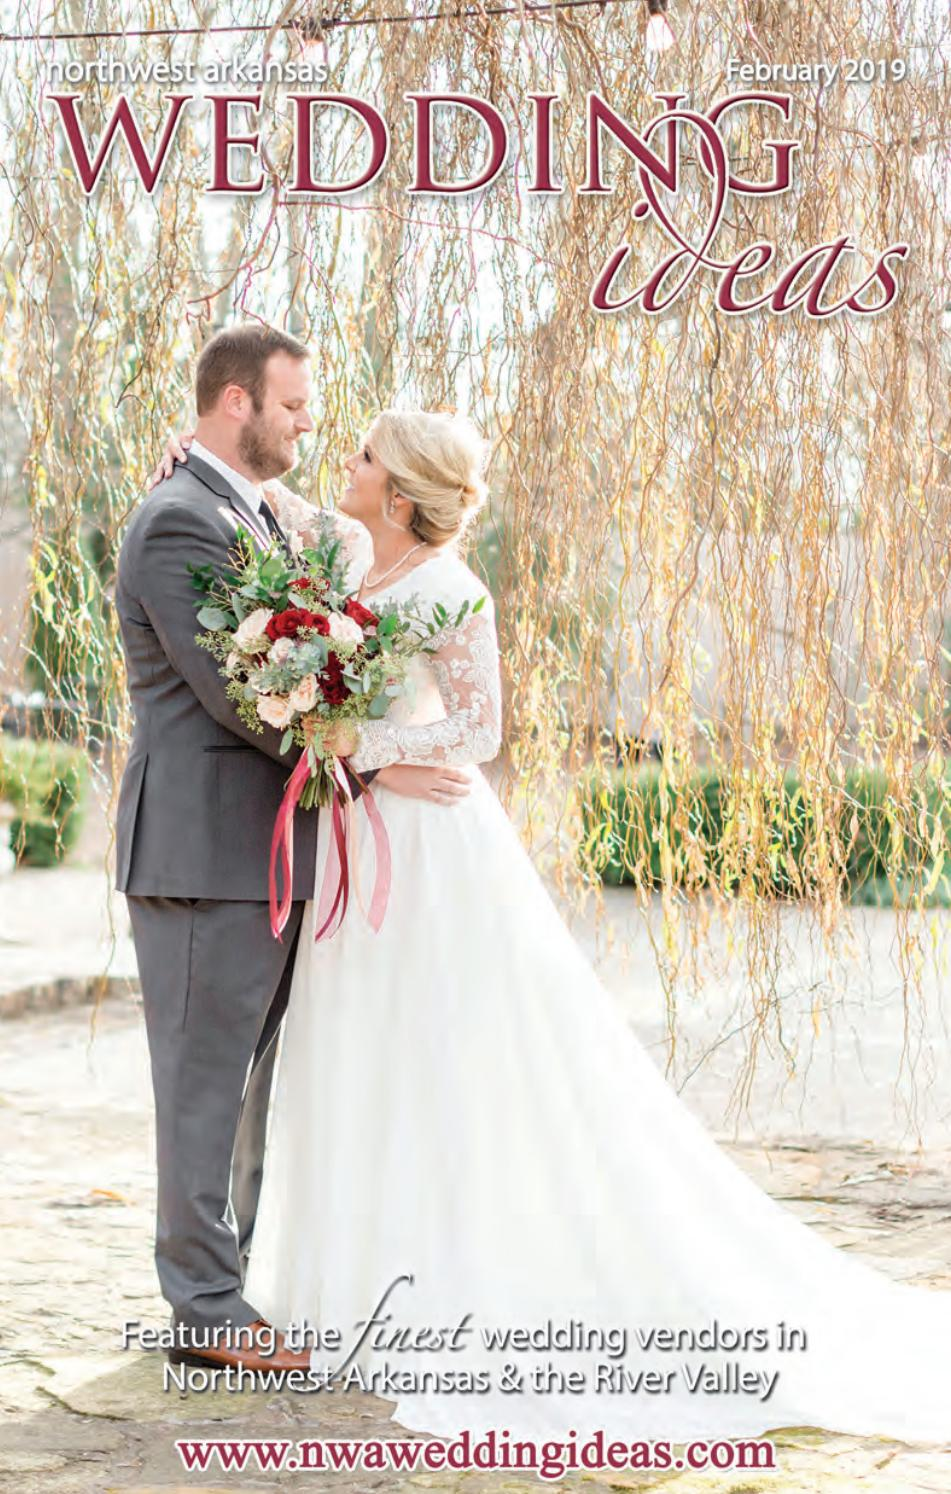 February 2019 by NWA Wedding Ideas